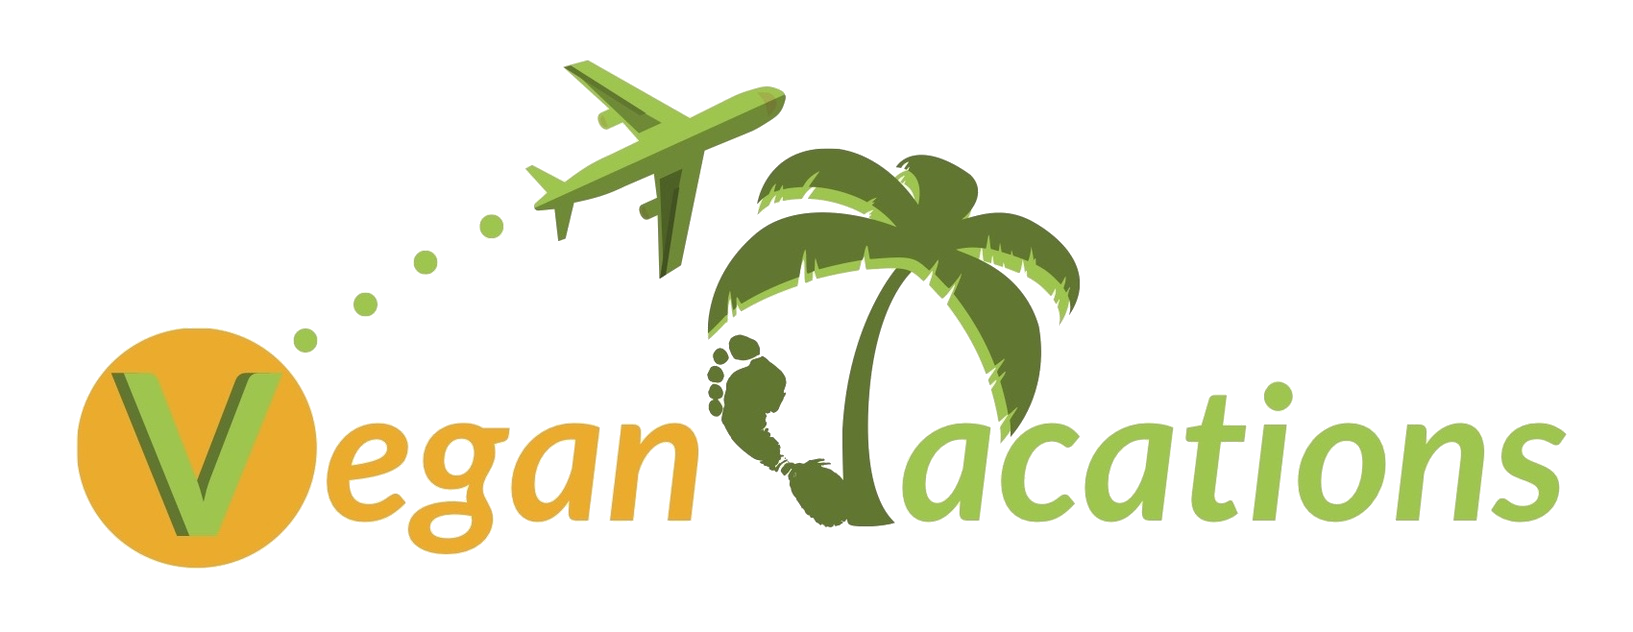 Vegan Vacations